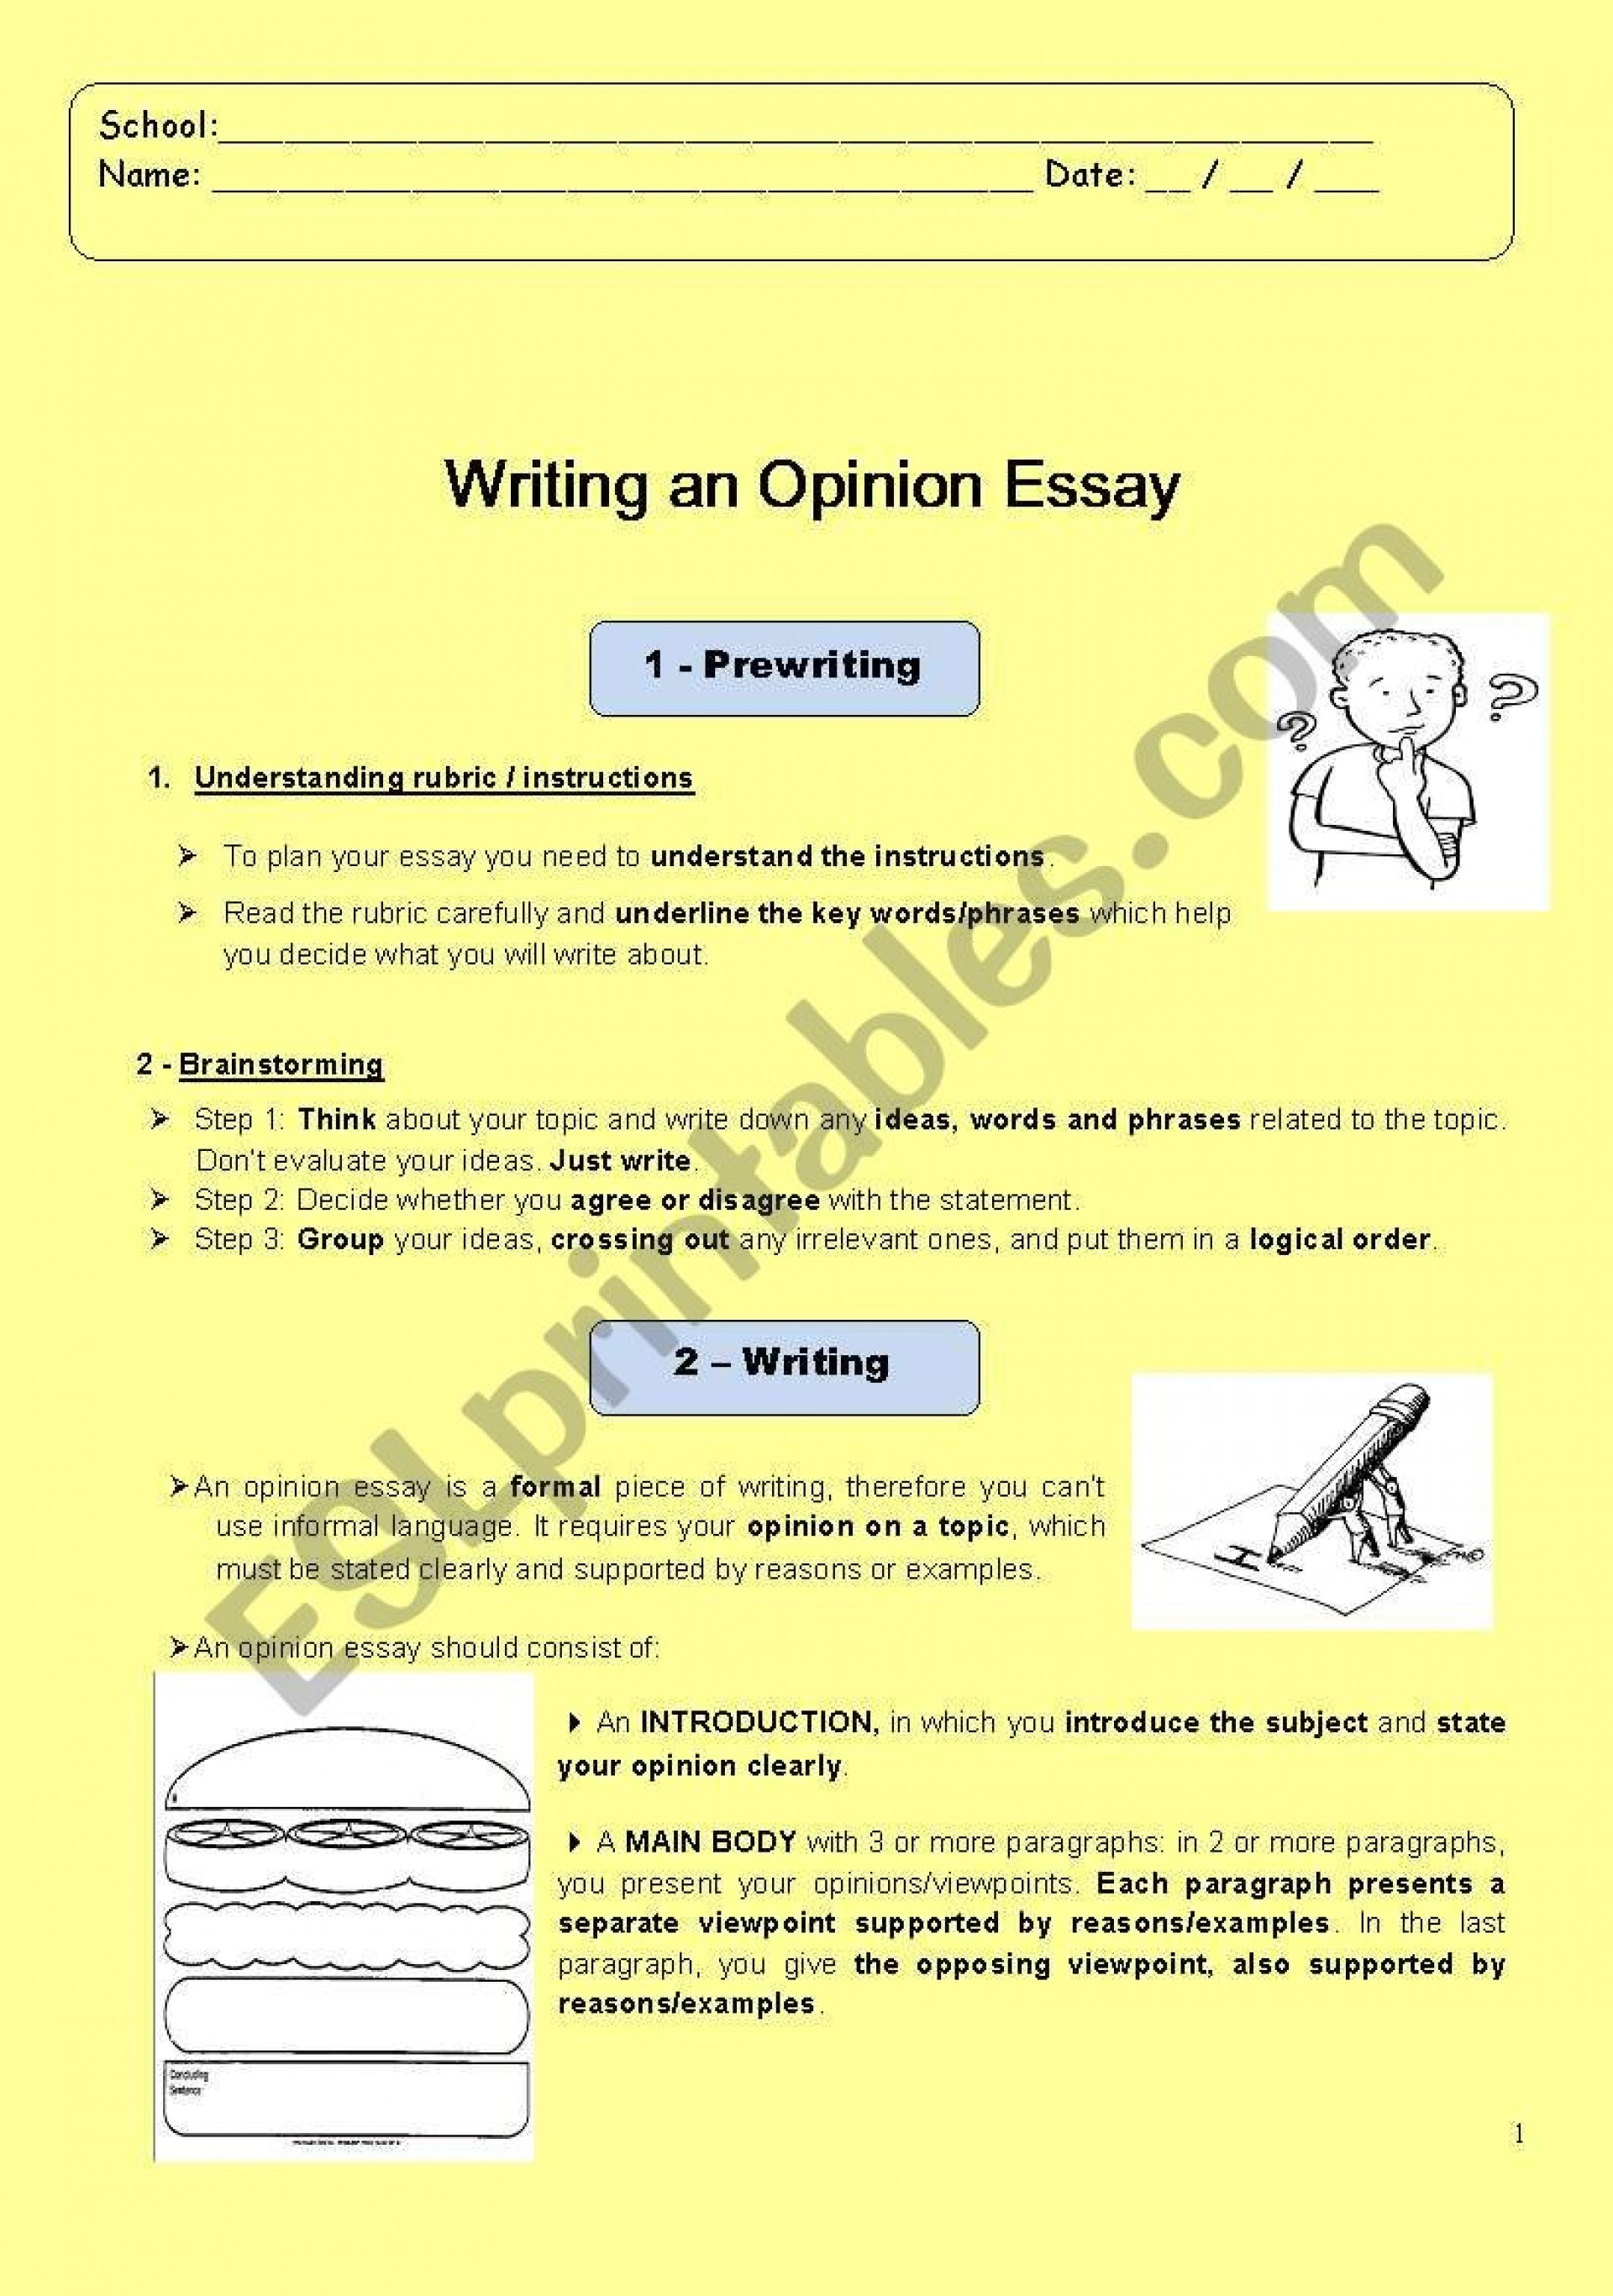 014 How To Write An Opinion Essay 519469 1 Unbelievable Conclusion On A Book Video 1920